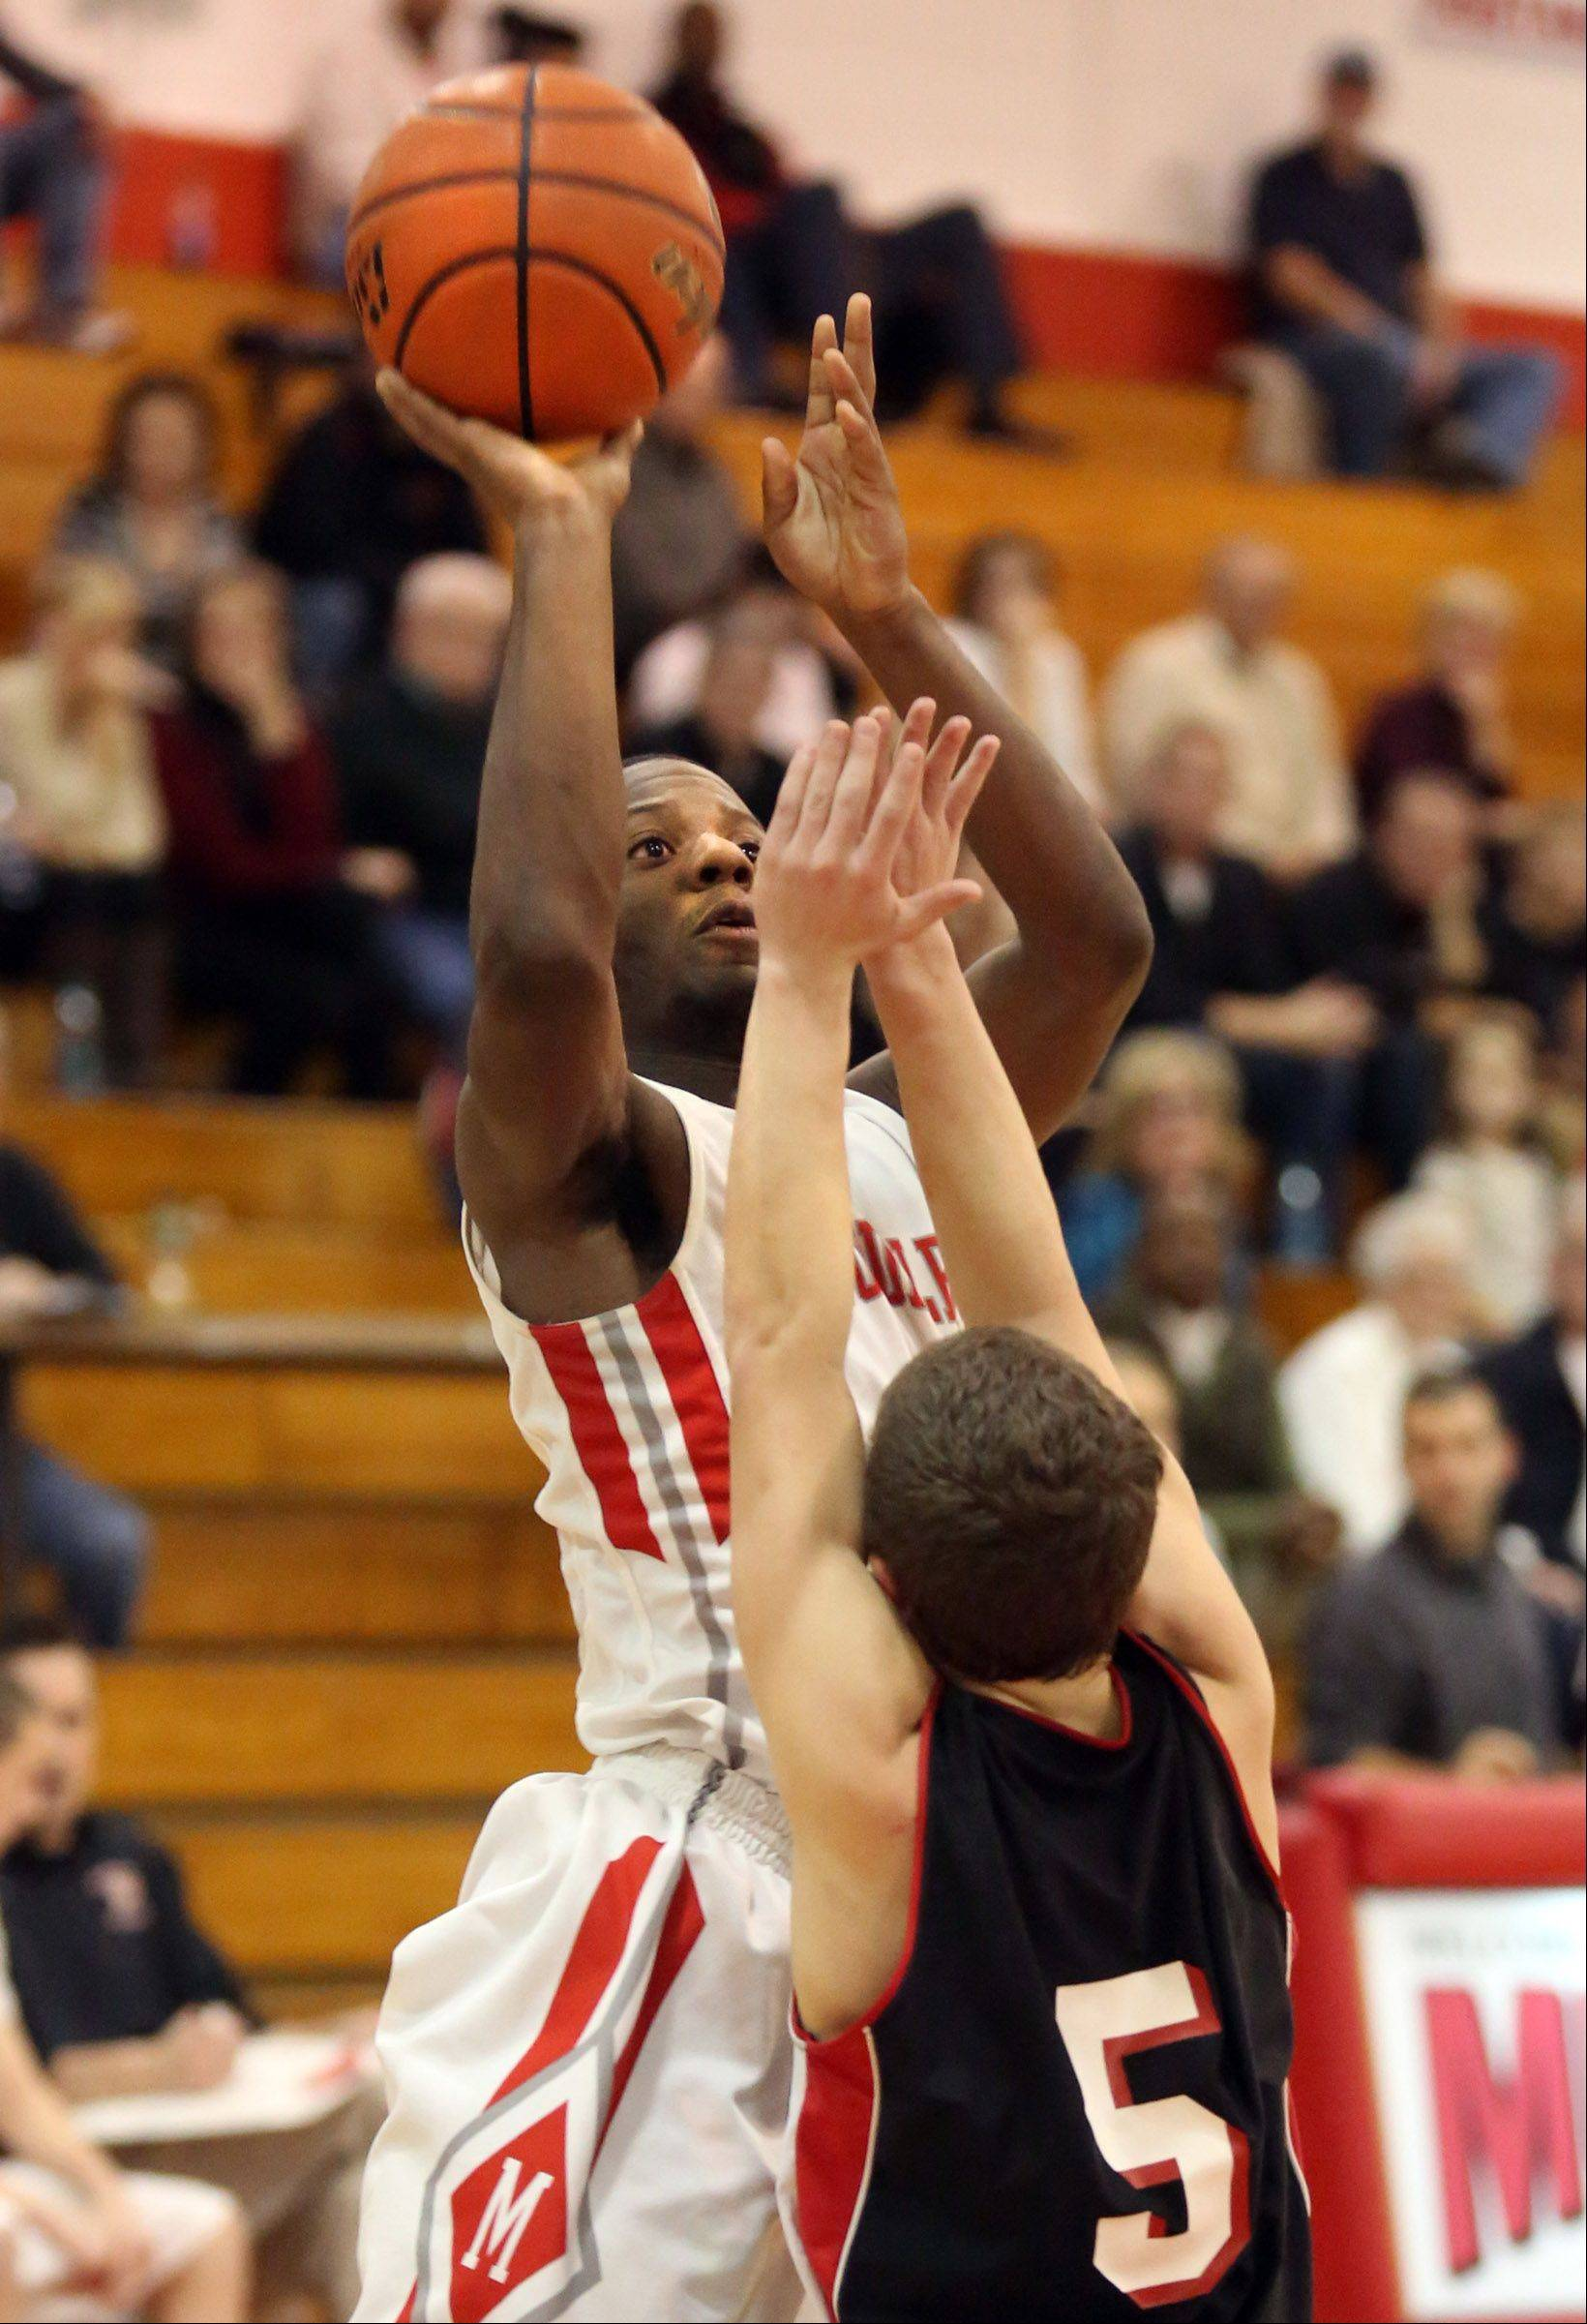 Mundelein guard Nate Willimas sinks a jumper over Barrington defender Jake Orr on Friday at Mundelein.